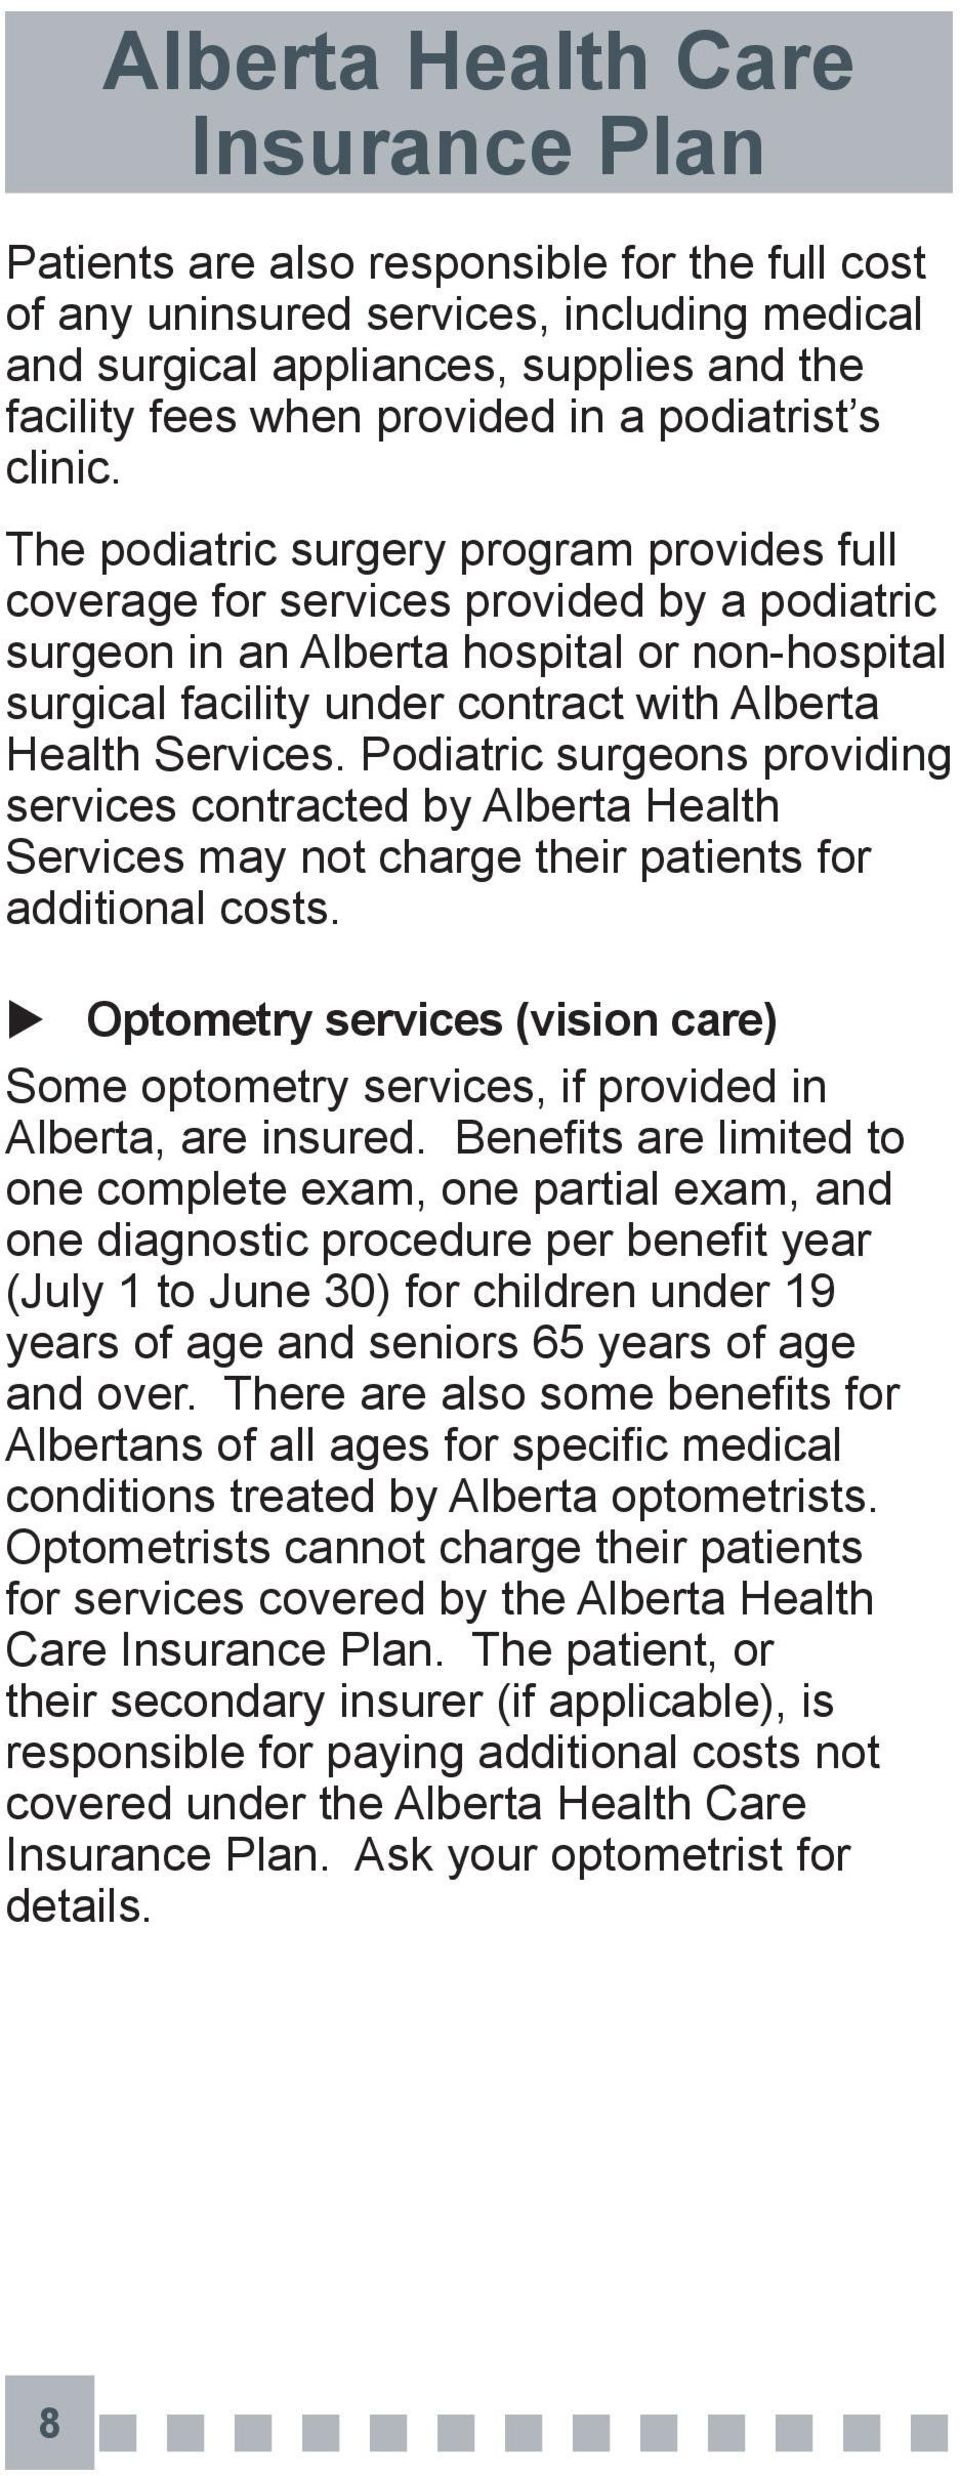 Podiatric surgeons providing services contracted by Alberta Health Services may not charge their patients for additional costs.